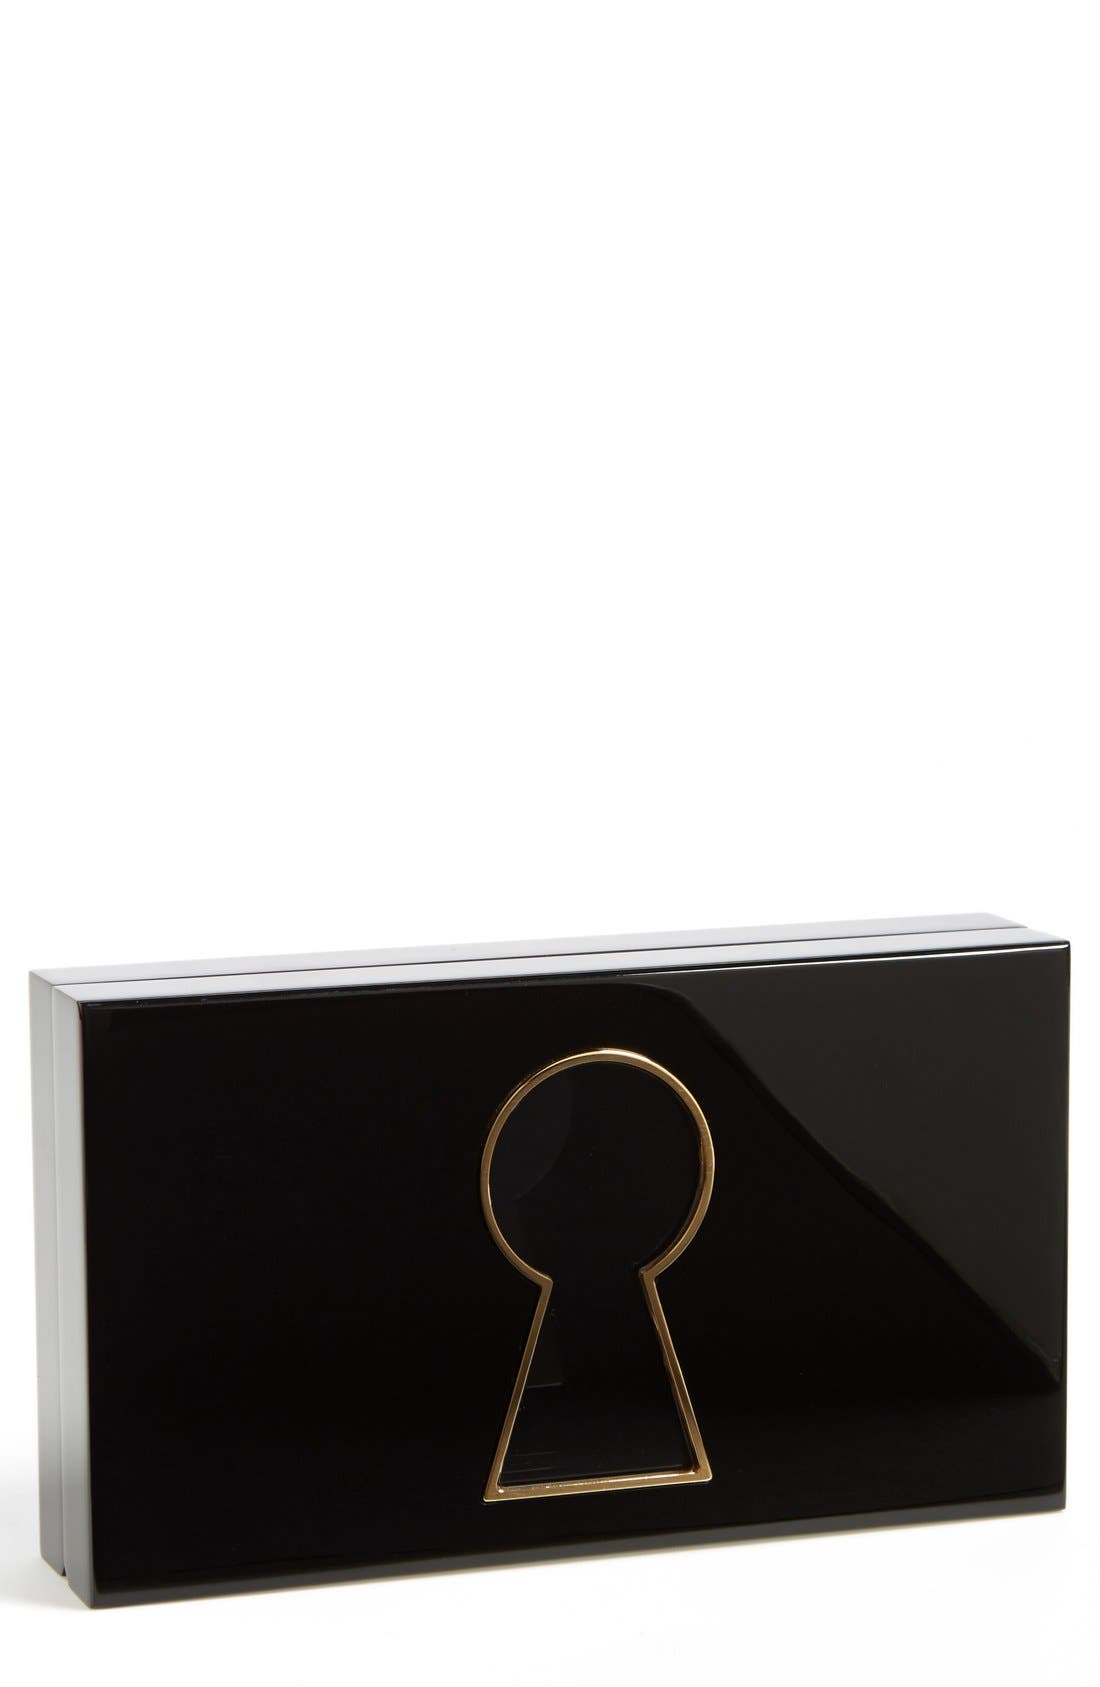 Alternate Image 1 Selected - Charlotte Olympia 'Keyhole Pandora' Clutch